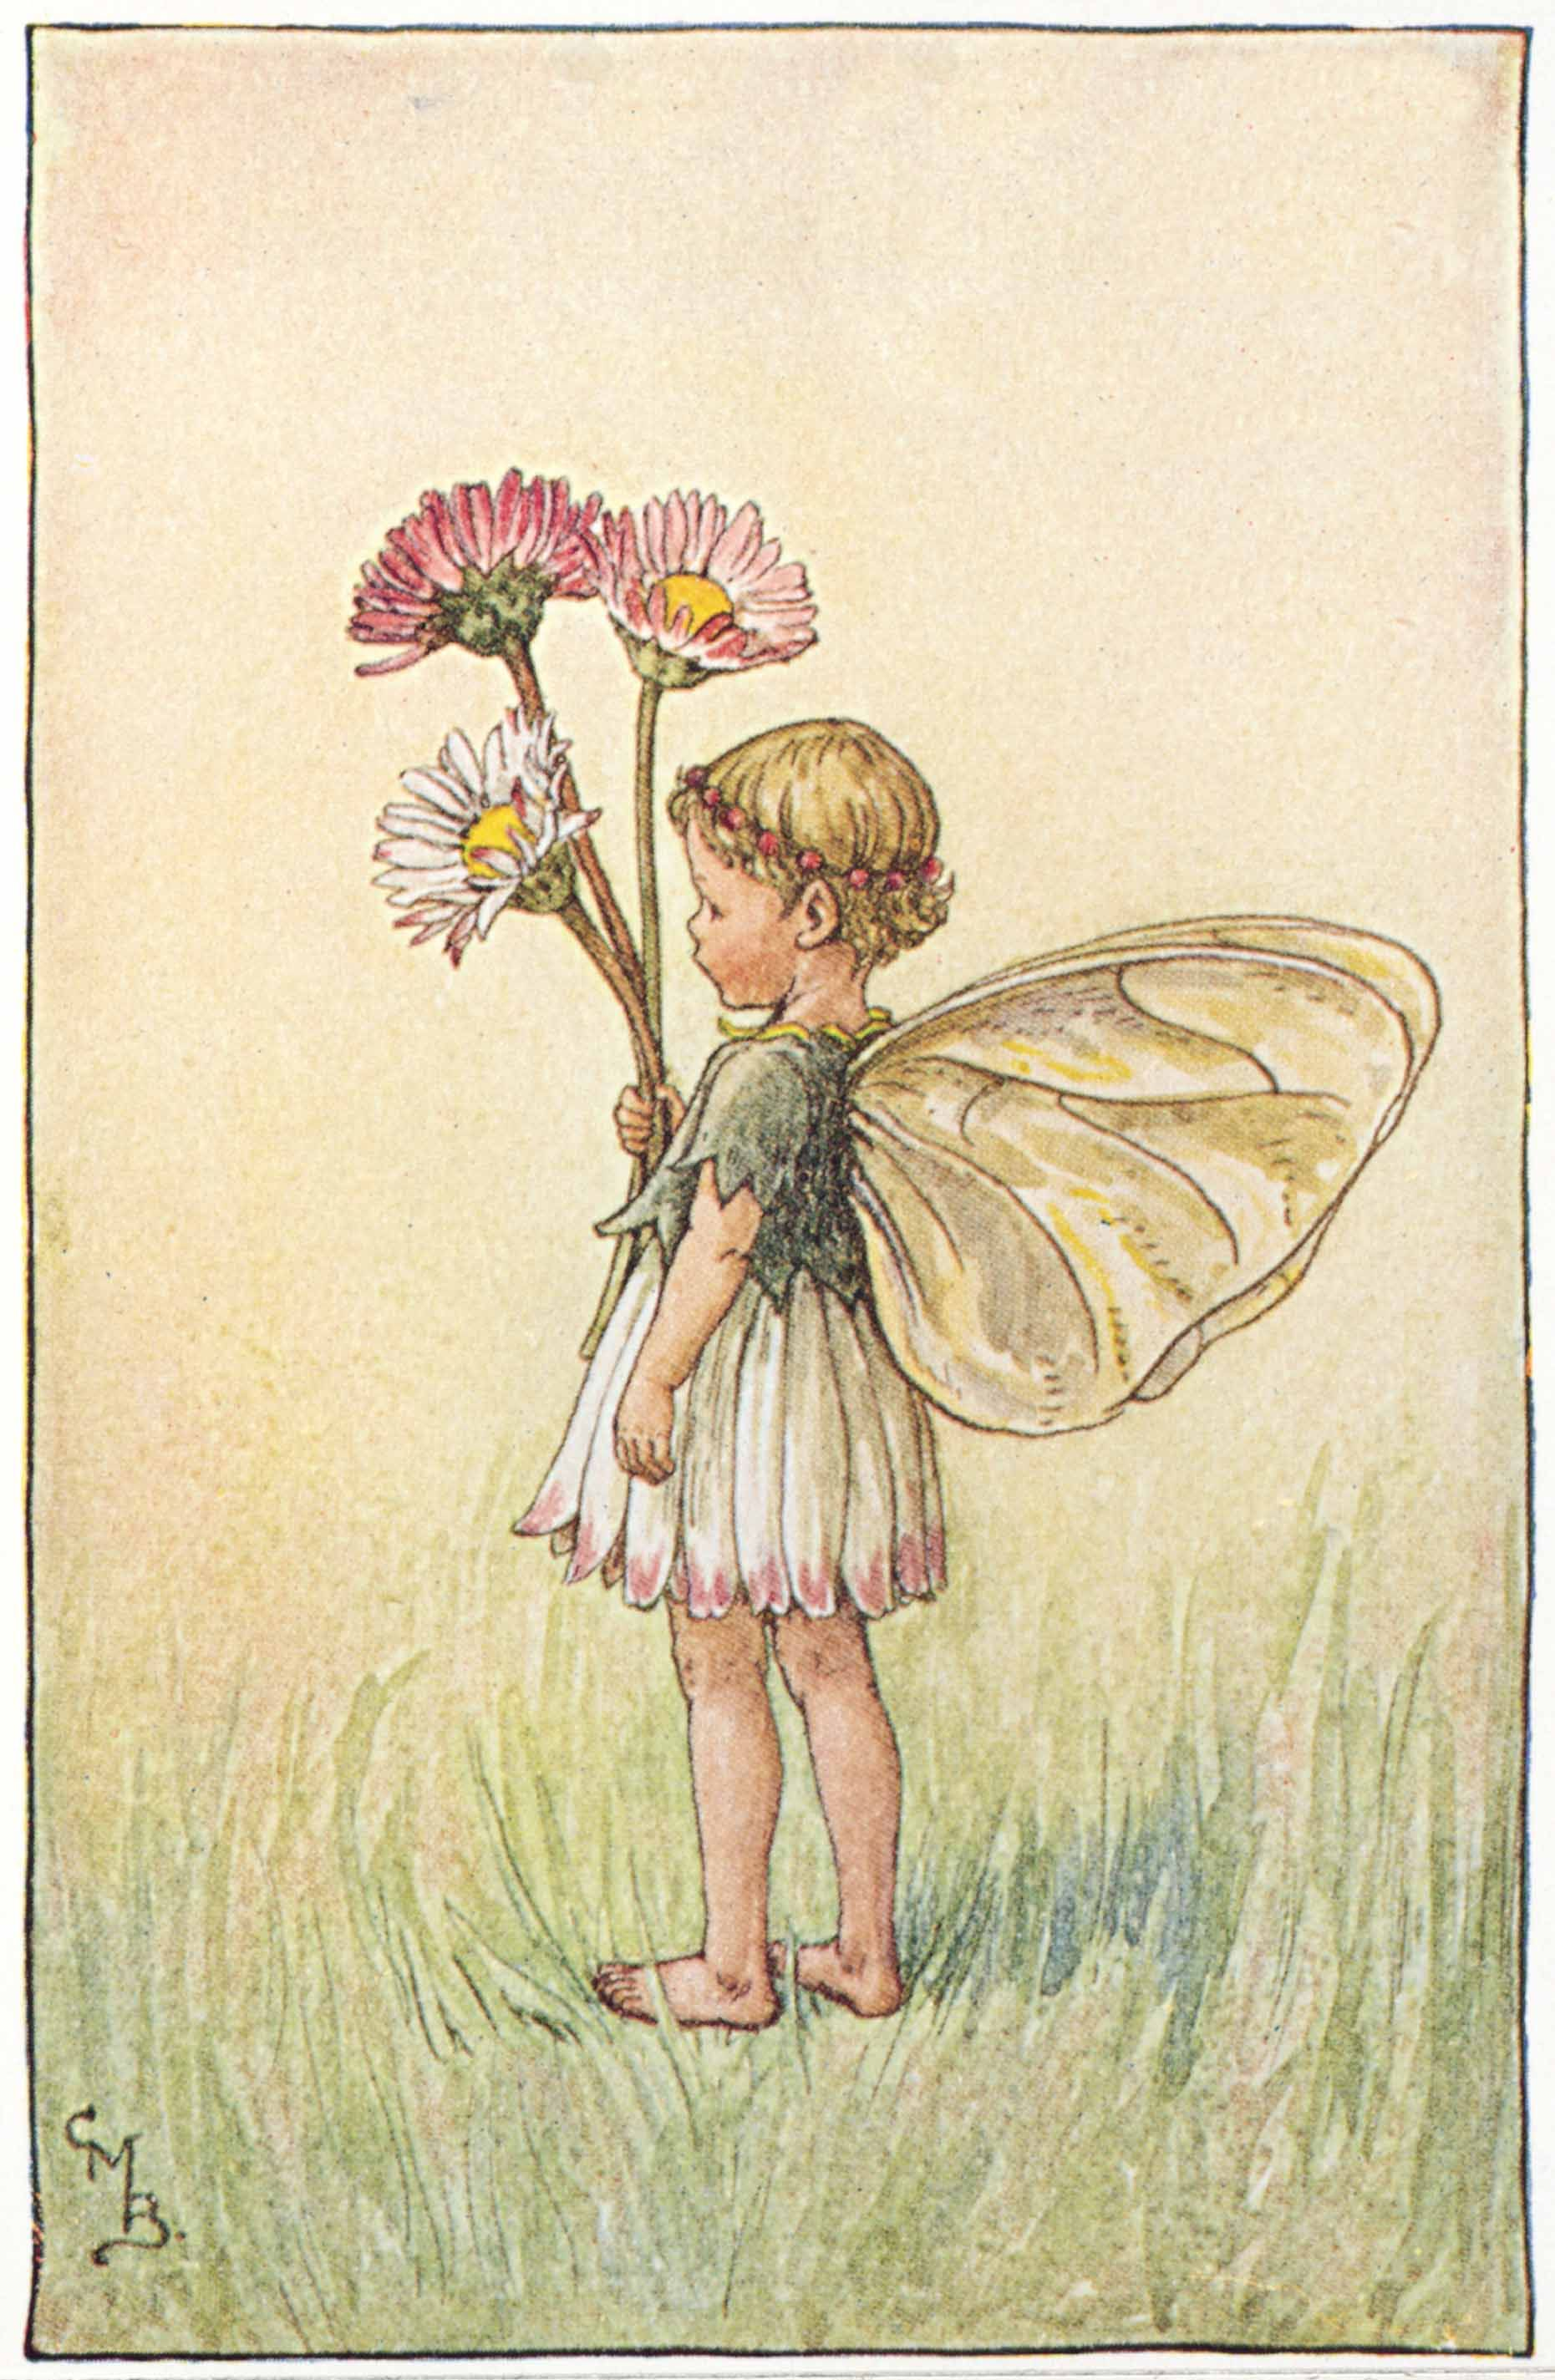 Illustration for the daisy fairy from flower fairies of the spring illustration for the daisy fairy from flower fairies of the spring a small girl fairy stands facing left with a bunch of daisies in her right hand izmirmasajfo